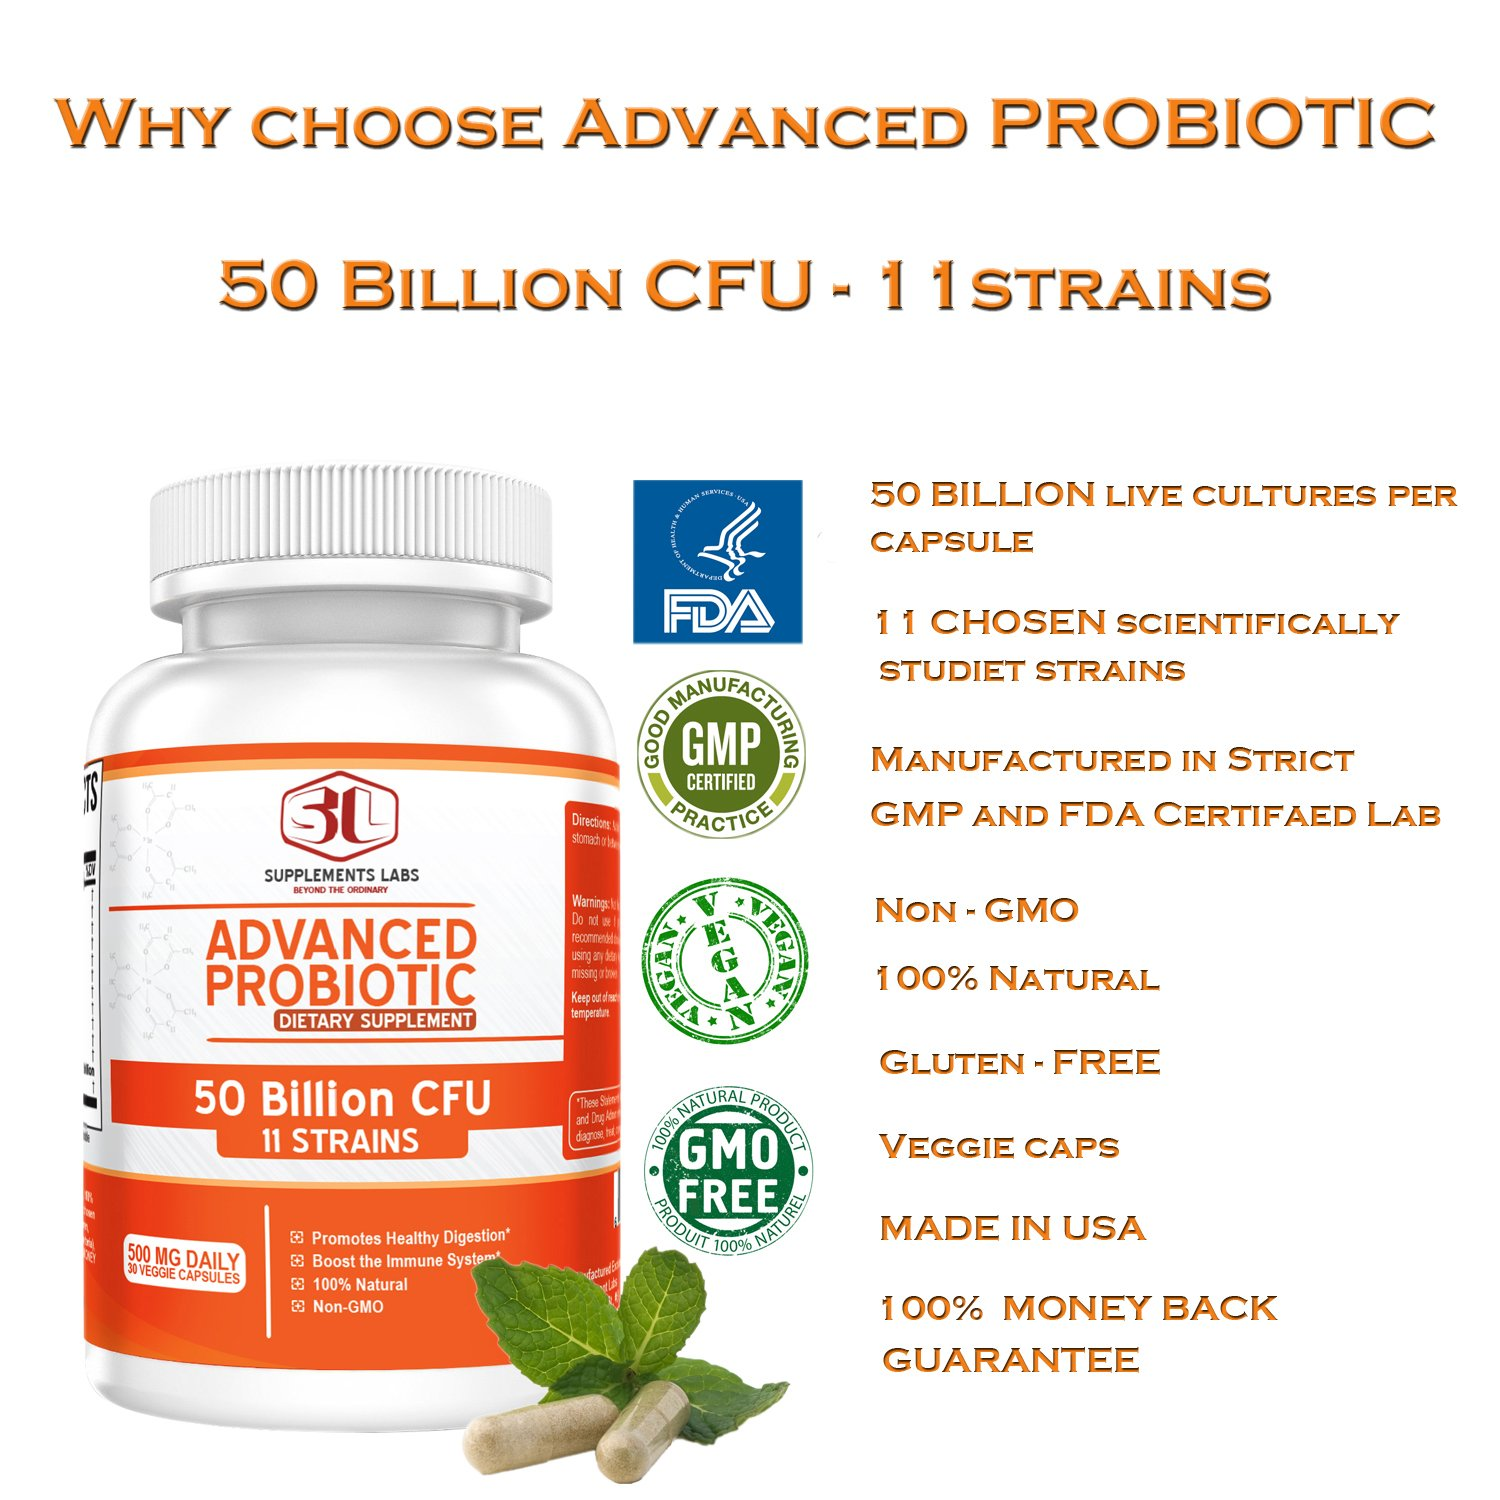 Advanced Probiotic 50 Billion CFU & 11 Strains Organisms Per Serving, Stomach Acid Resistant, Non-GMO, Gluten Free, Veggie, Patented Prebiotic Supplement for Men & Women, No Refrigeration Required